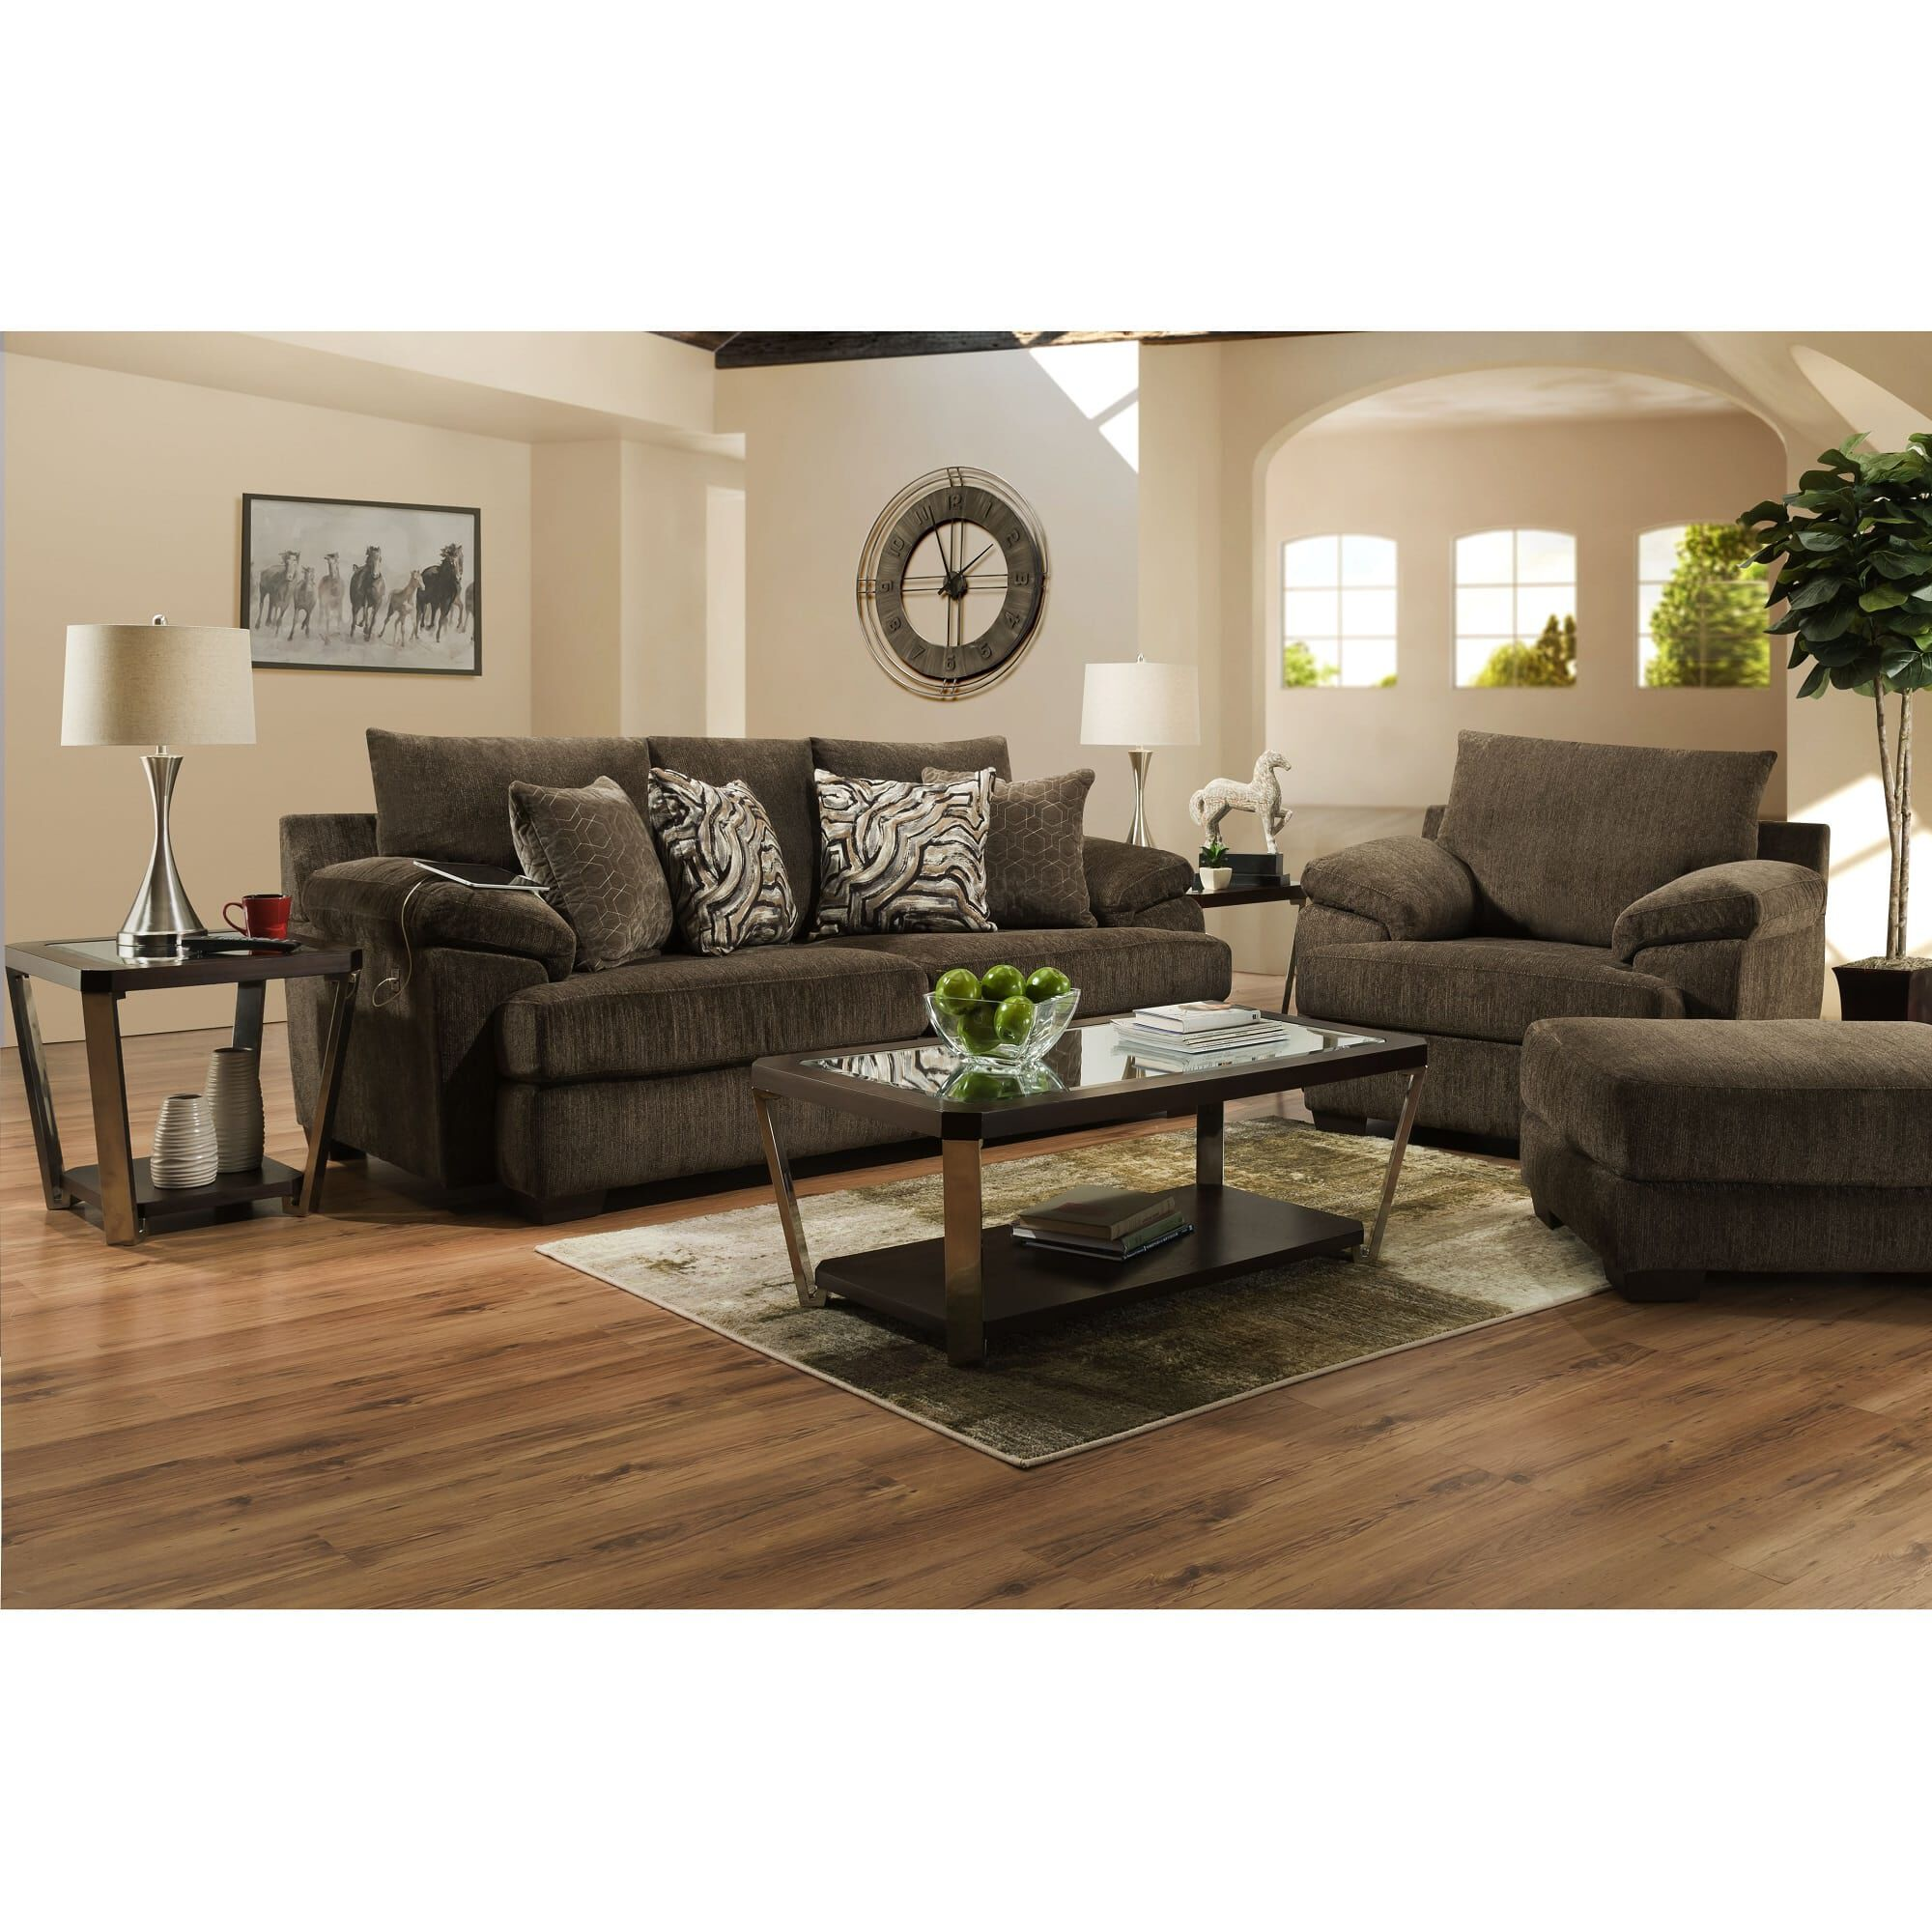 3 piece living room table set valance rent to own furniture aaron s phoenix collection